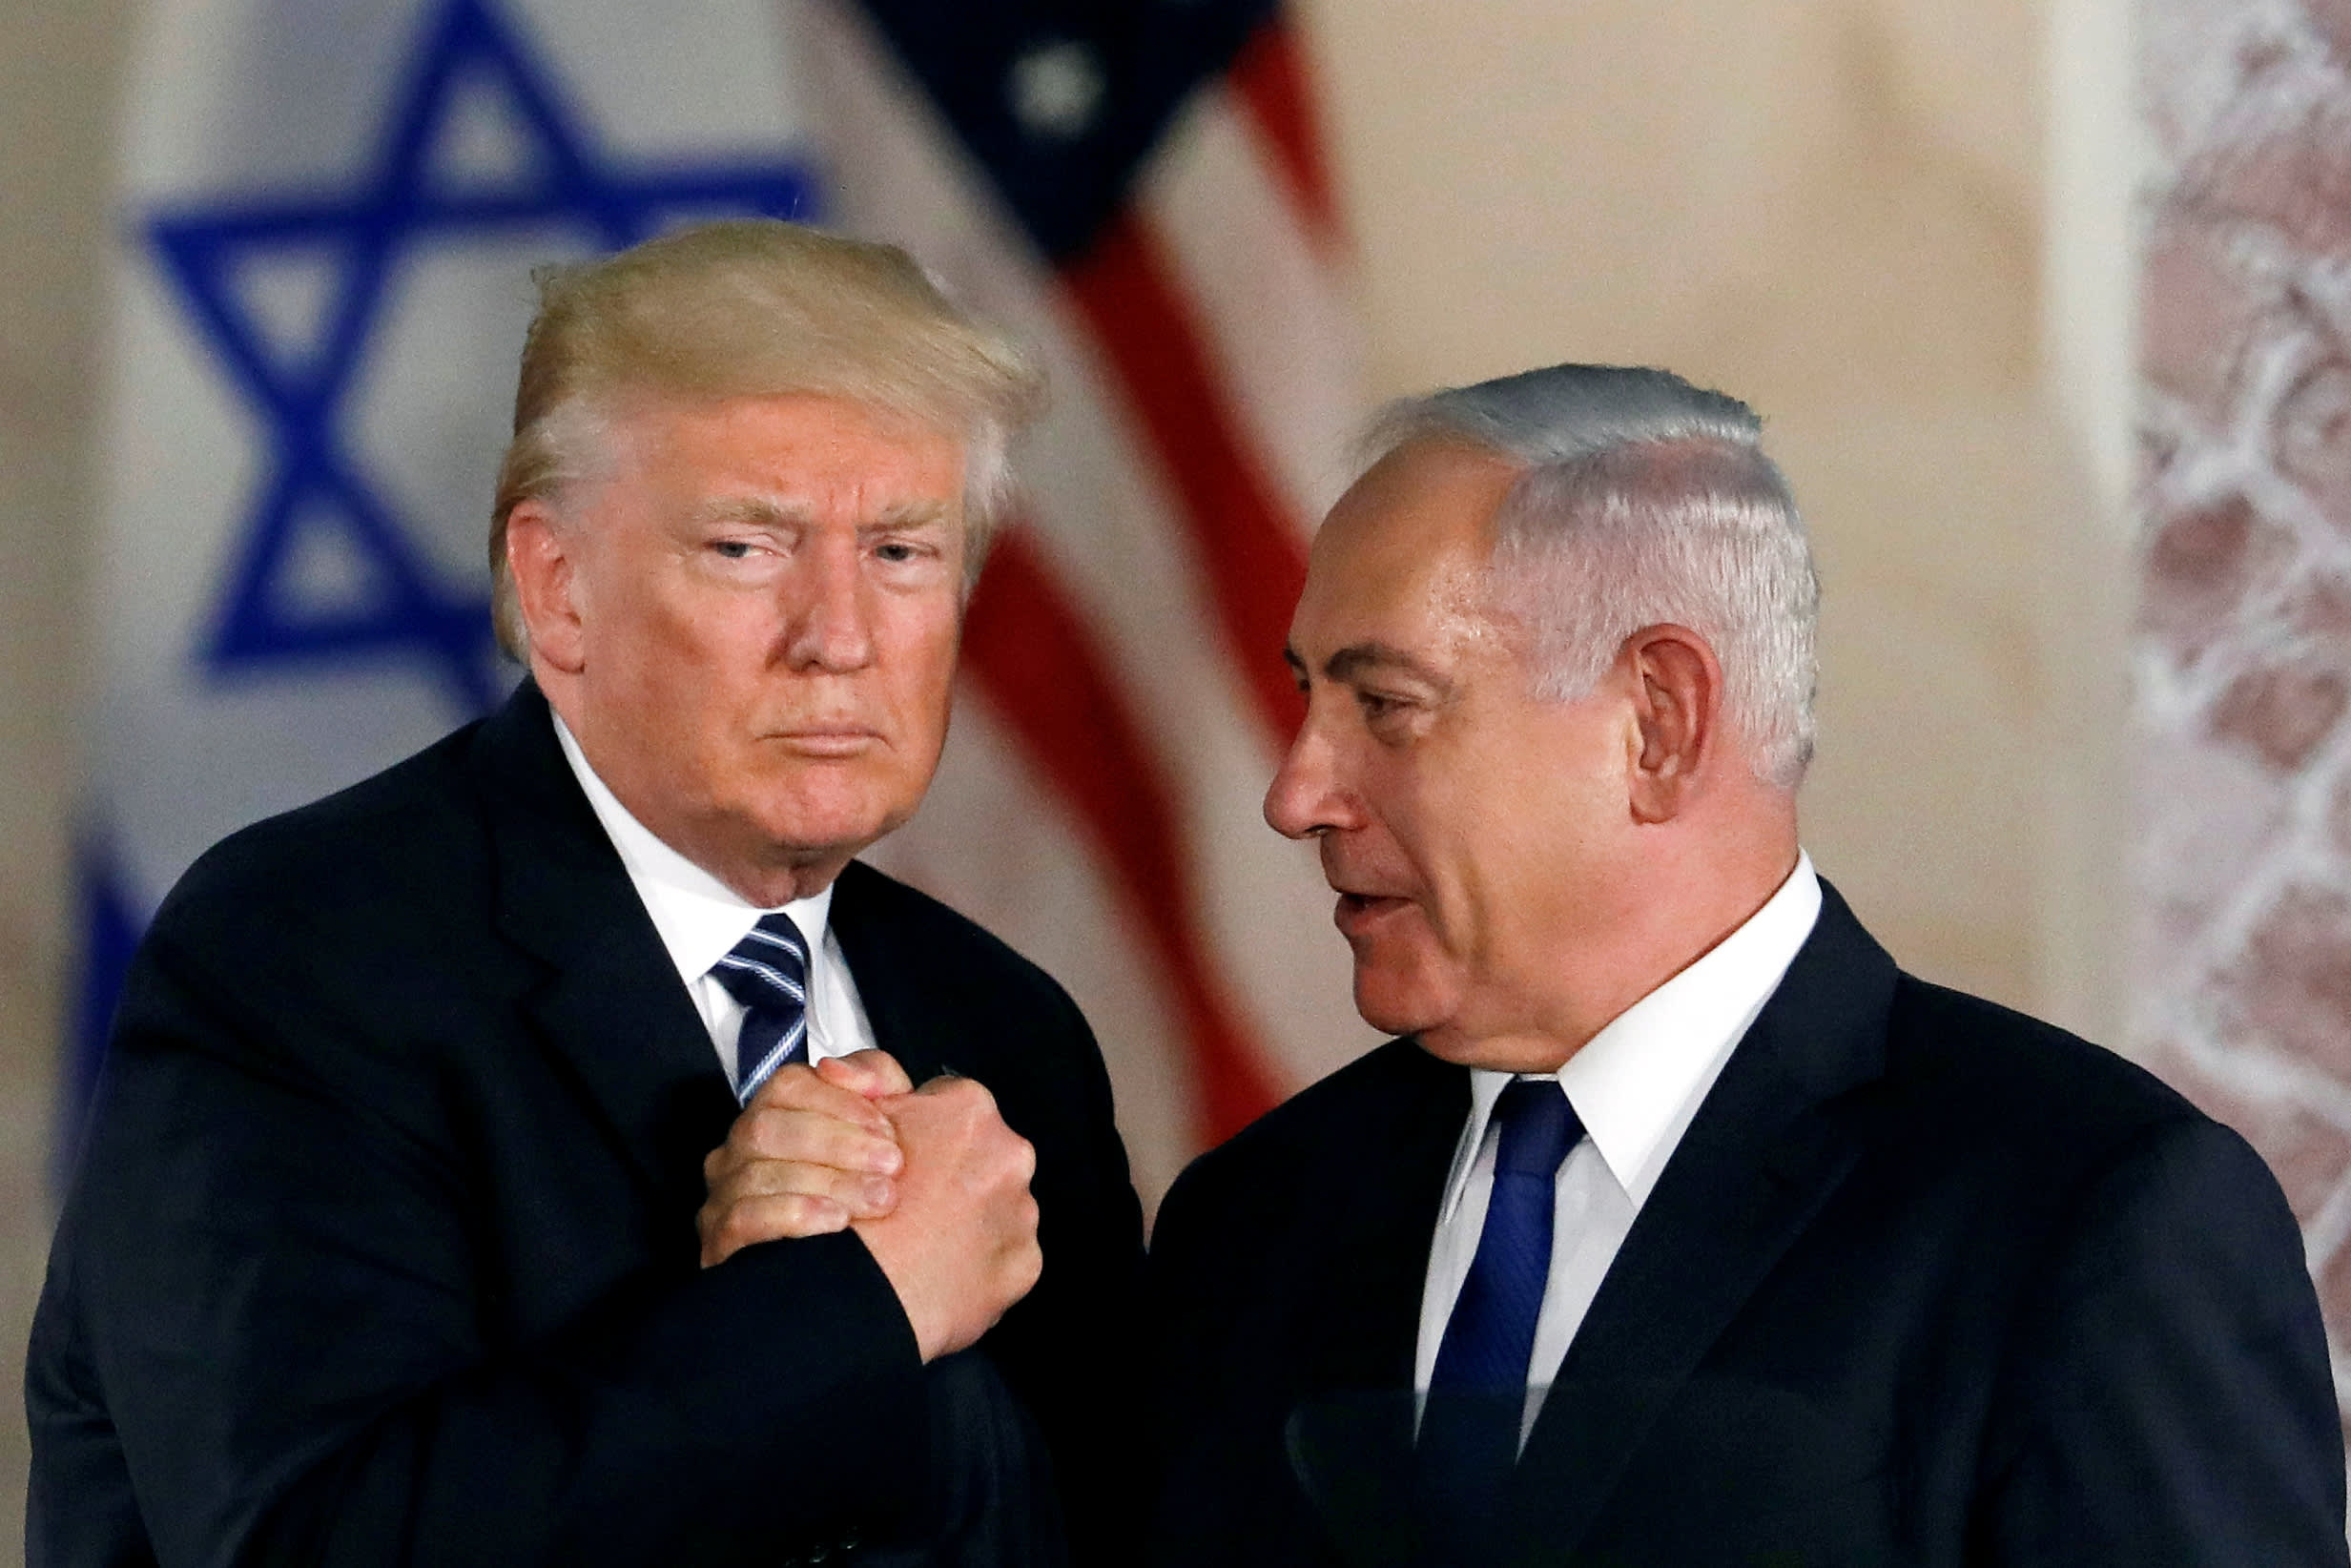 Trump says he discussed a mutual defense treaty with Israeli Prime Minister Benjamin Netanyahu